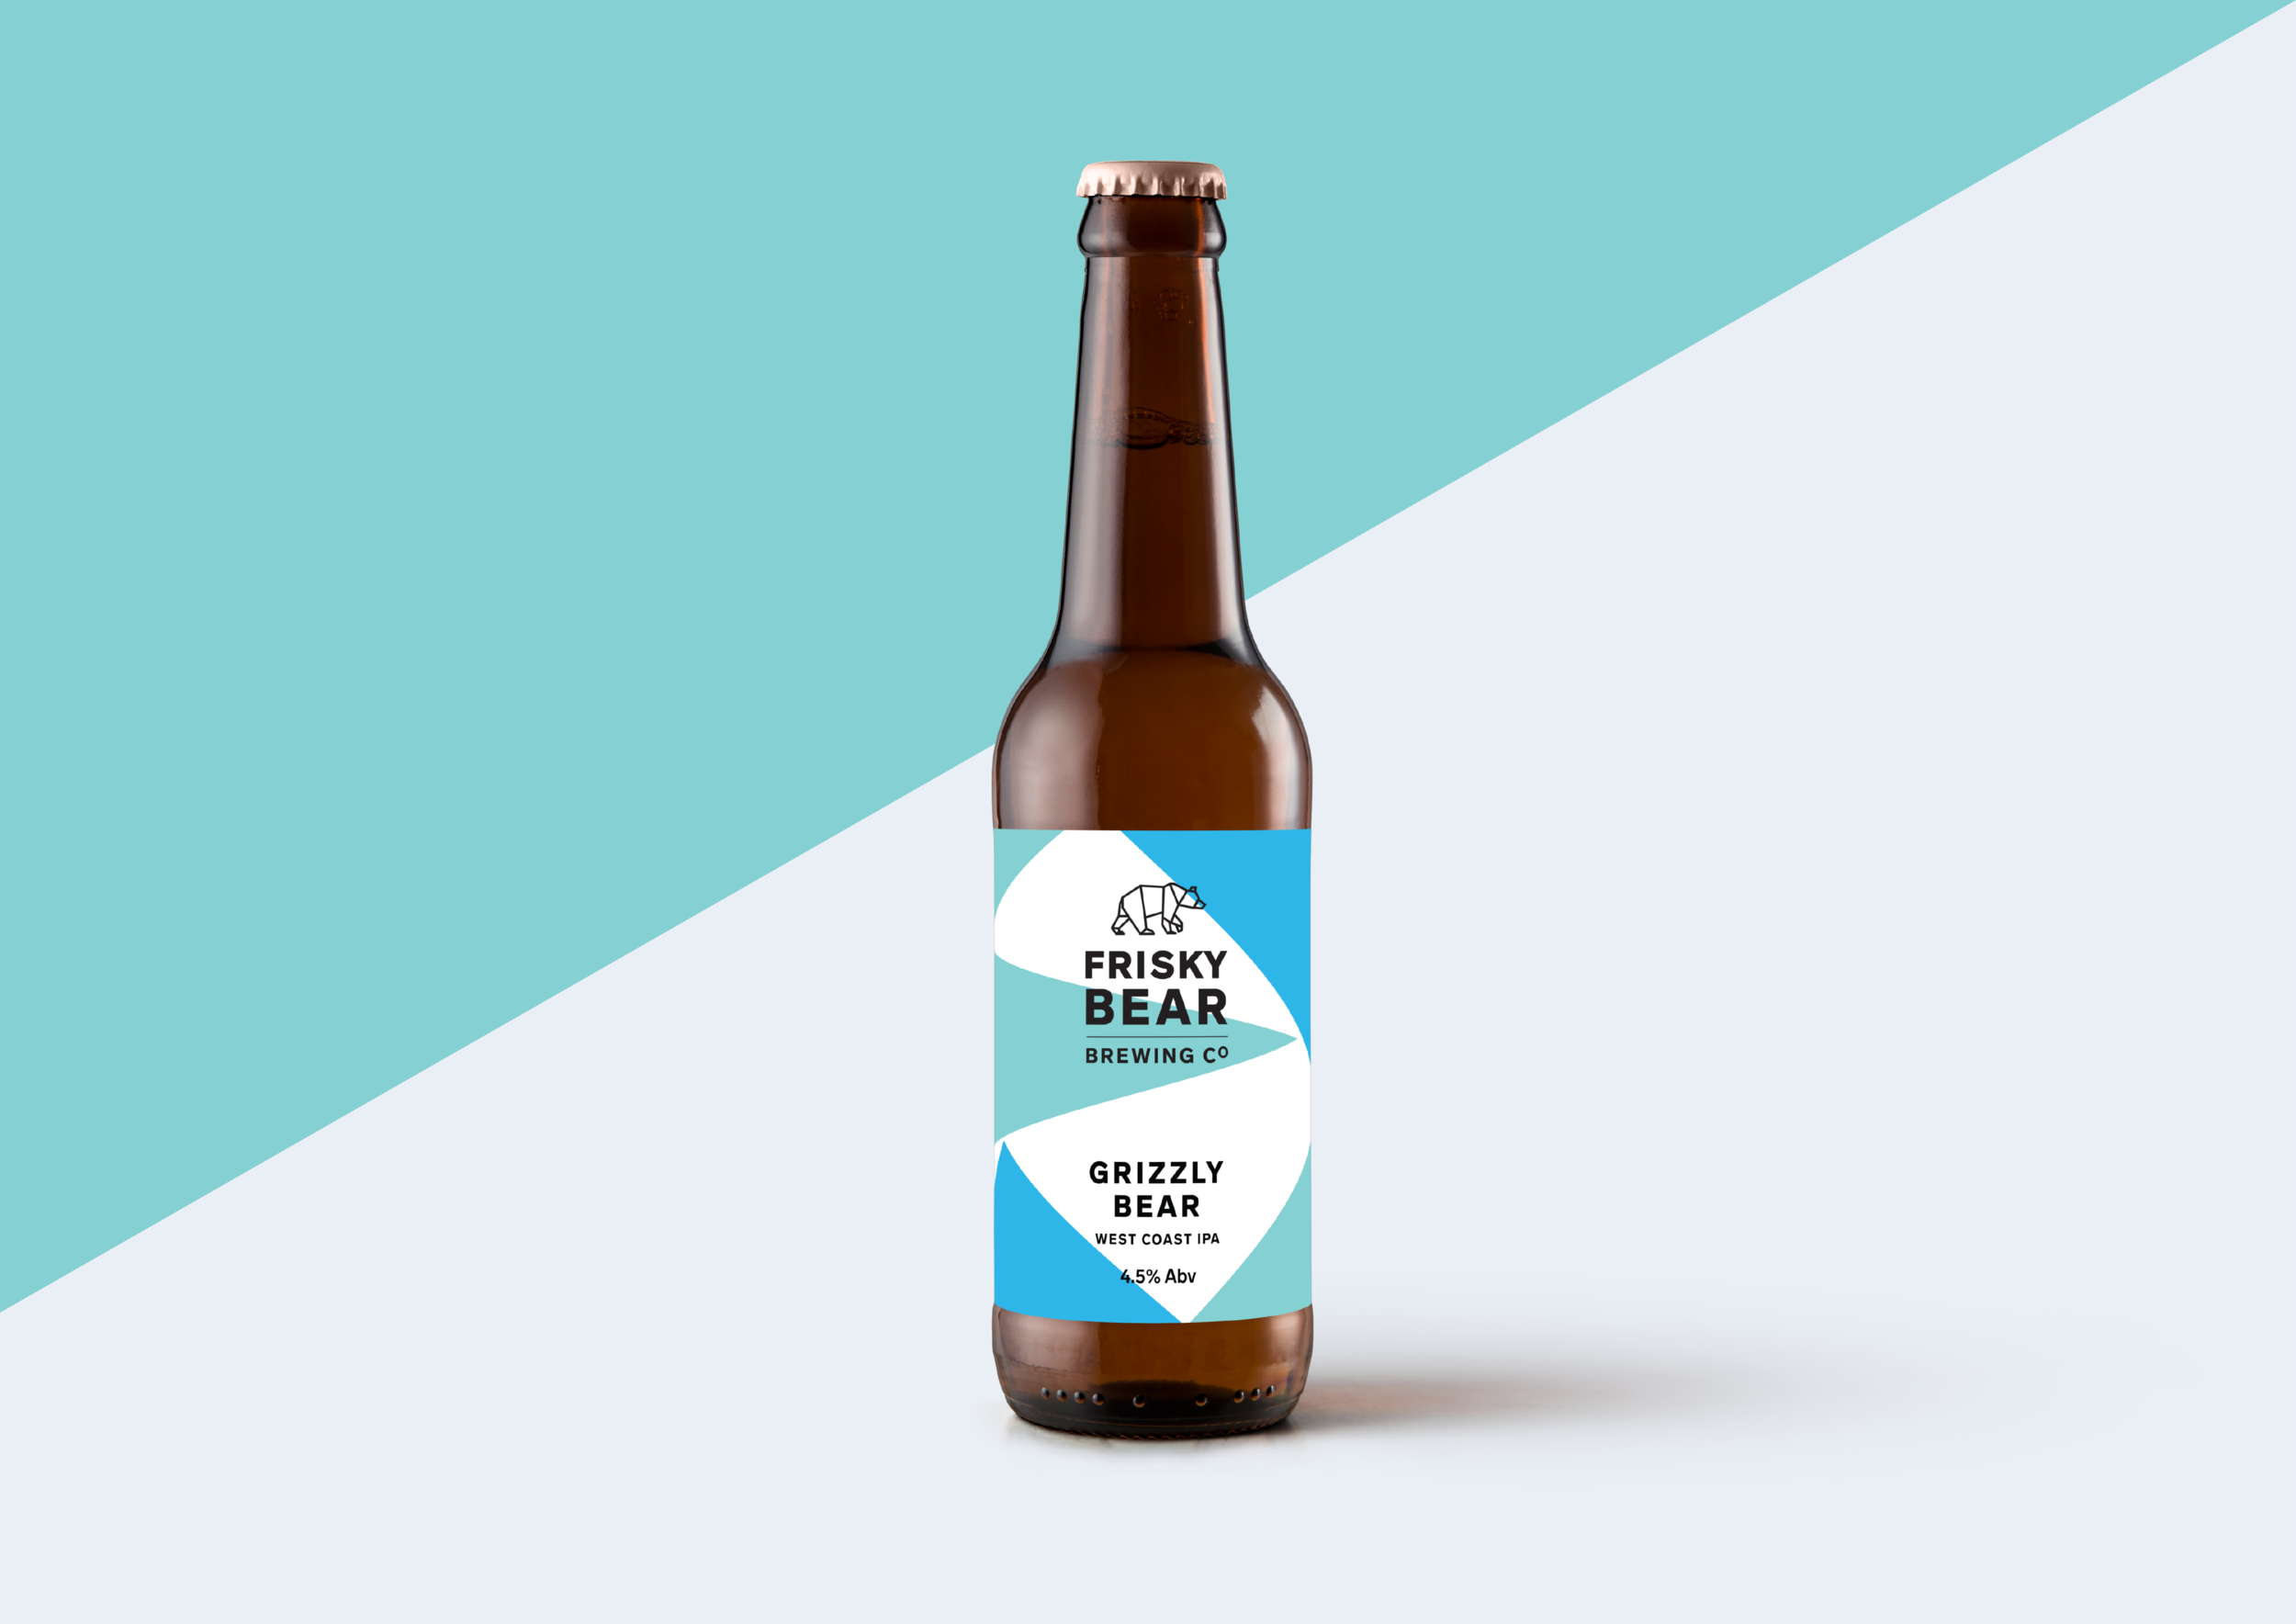 Frisky Bear craft beer branding 2.png